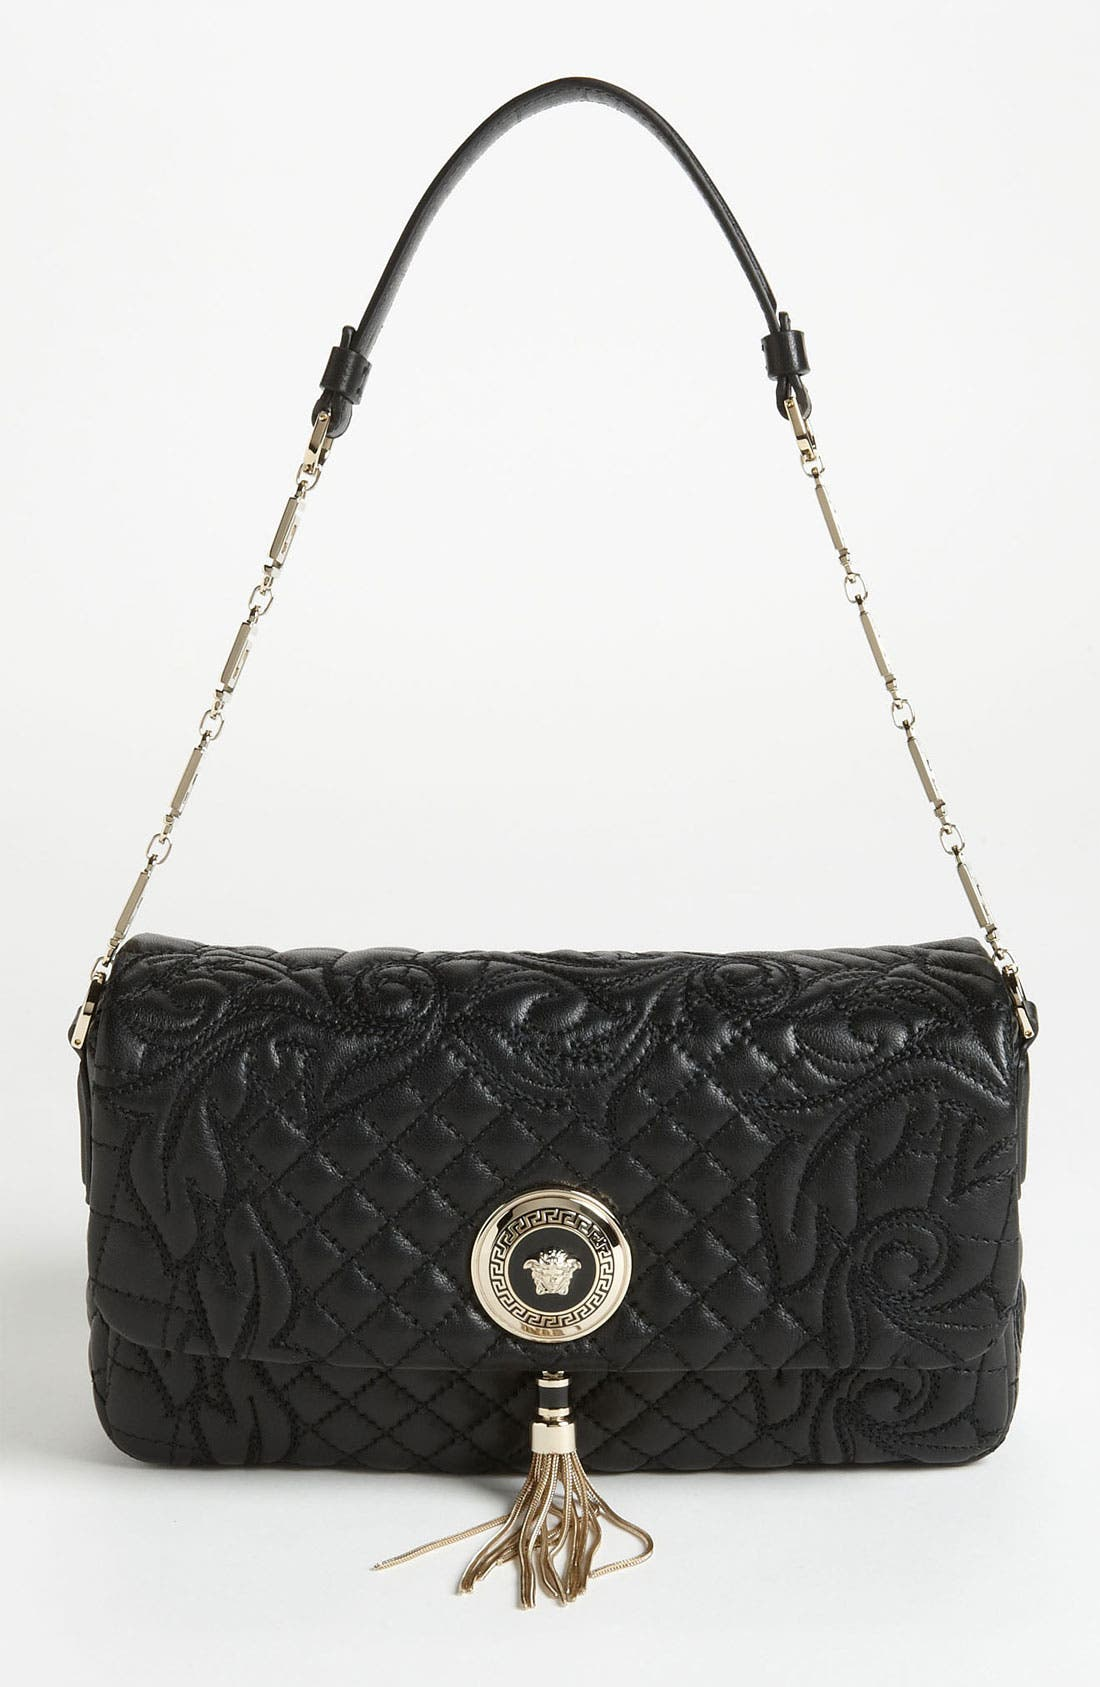 Alternate Image 1 Selected - Versace 'Vanitas - Small' Embroidered Leather Shoulder Bag